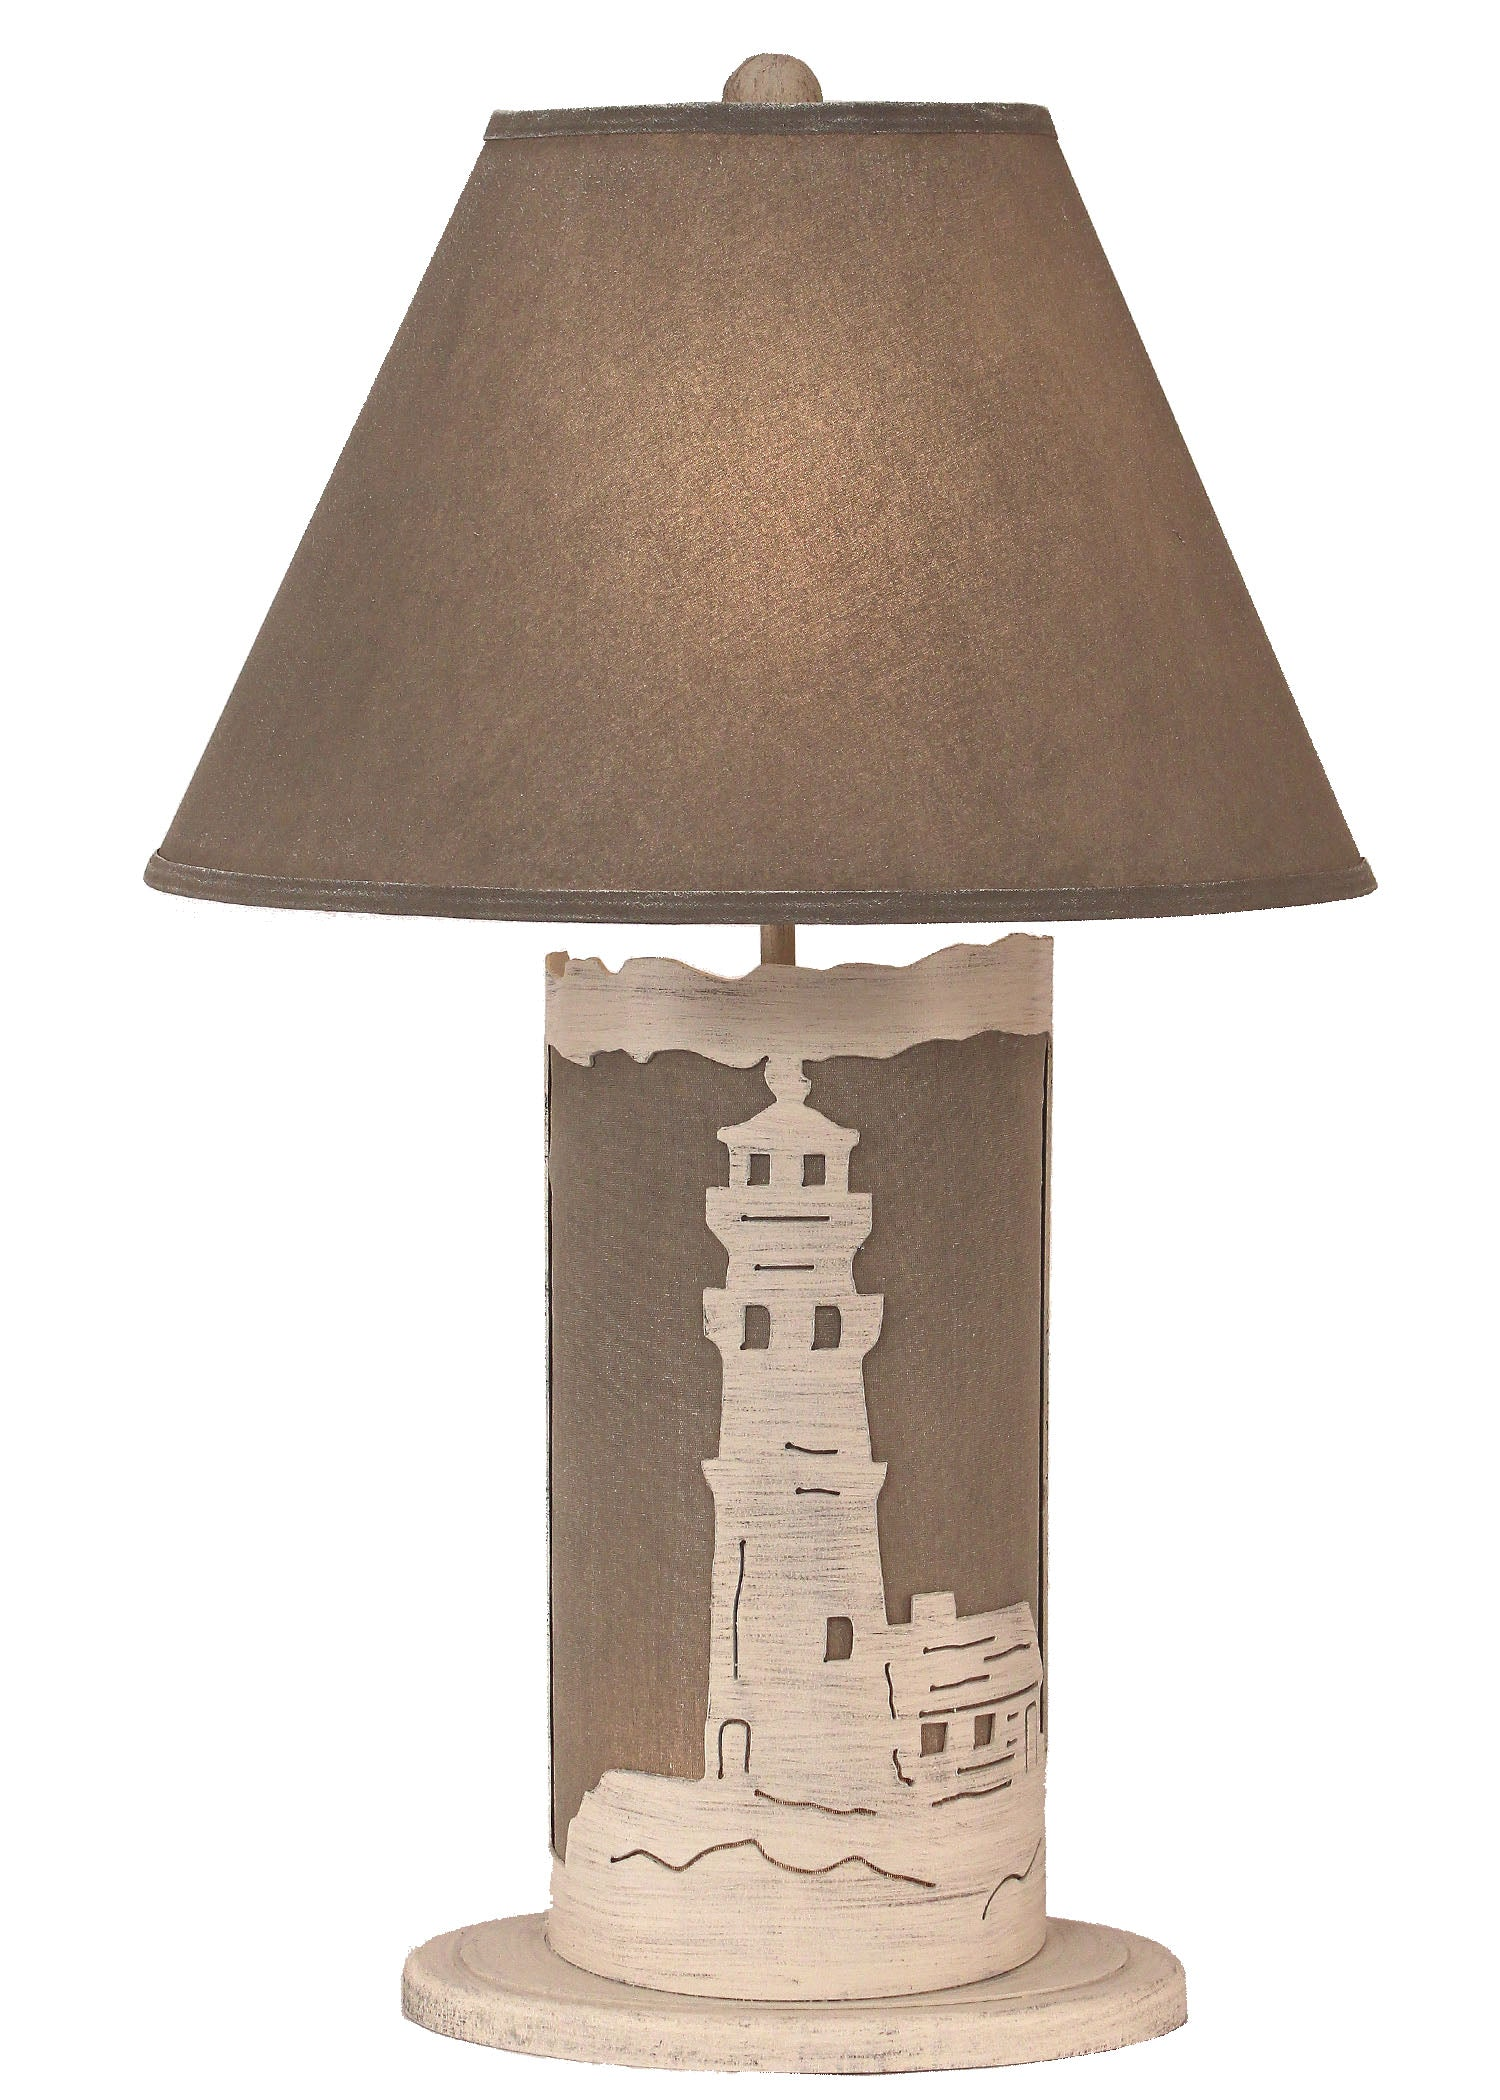 Cottage/Grey Light House Table Lamp w/ Night Light - Coast Lamp Shop